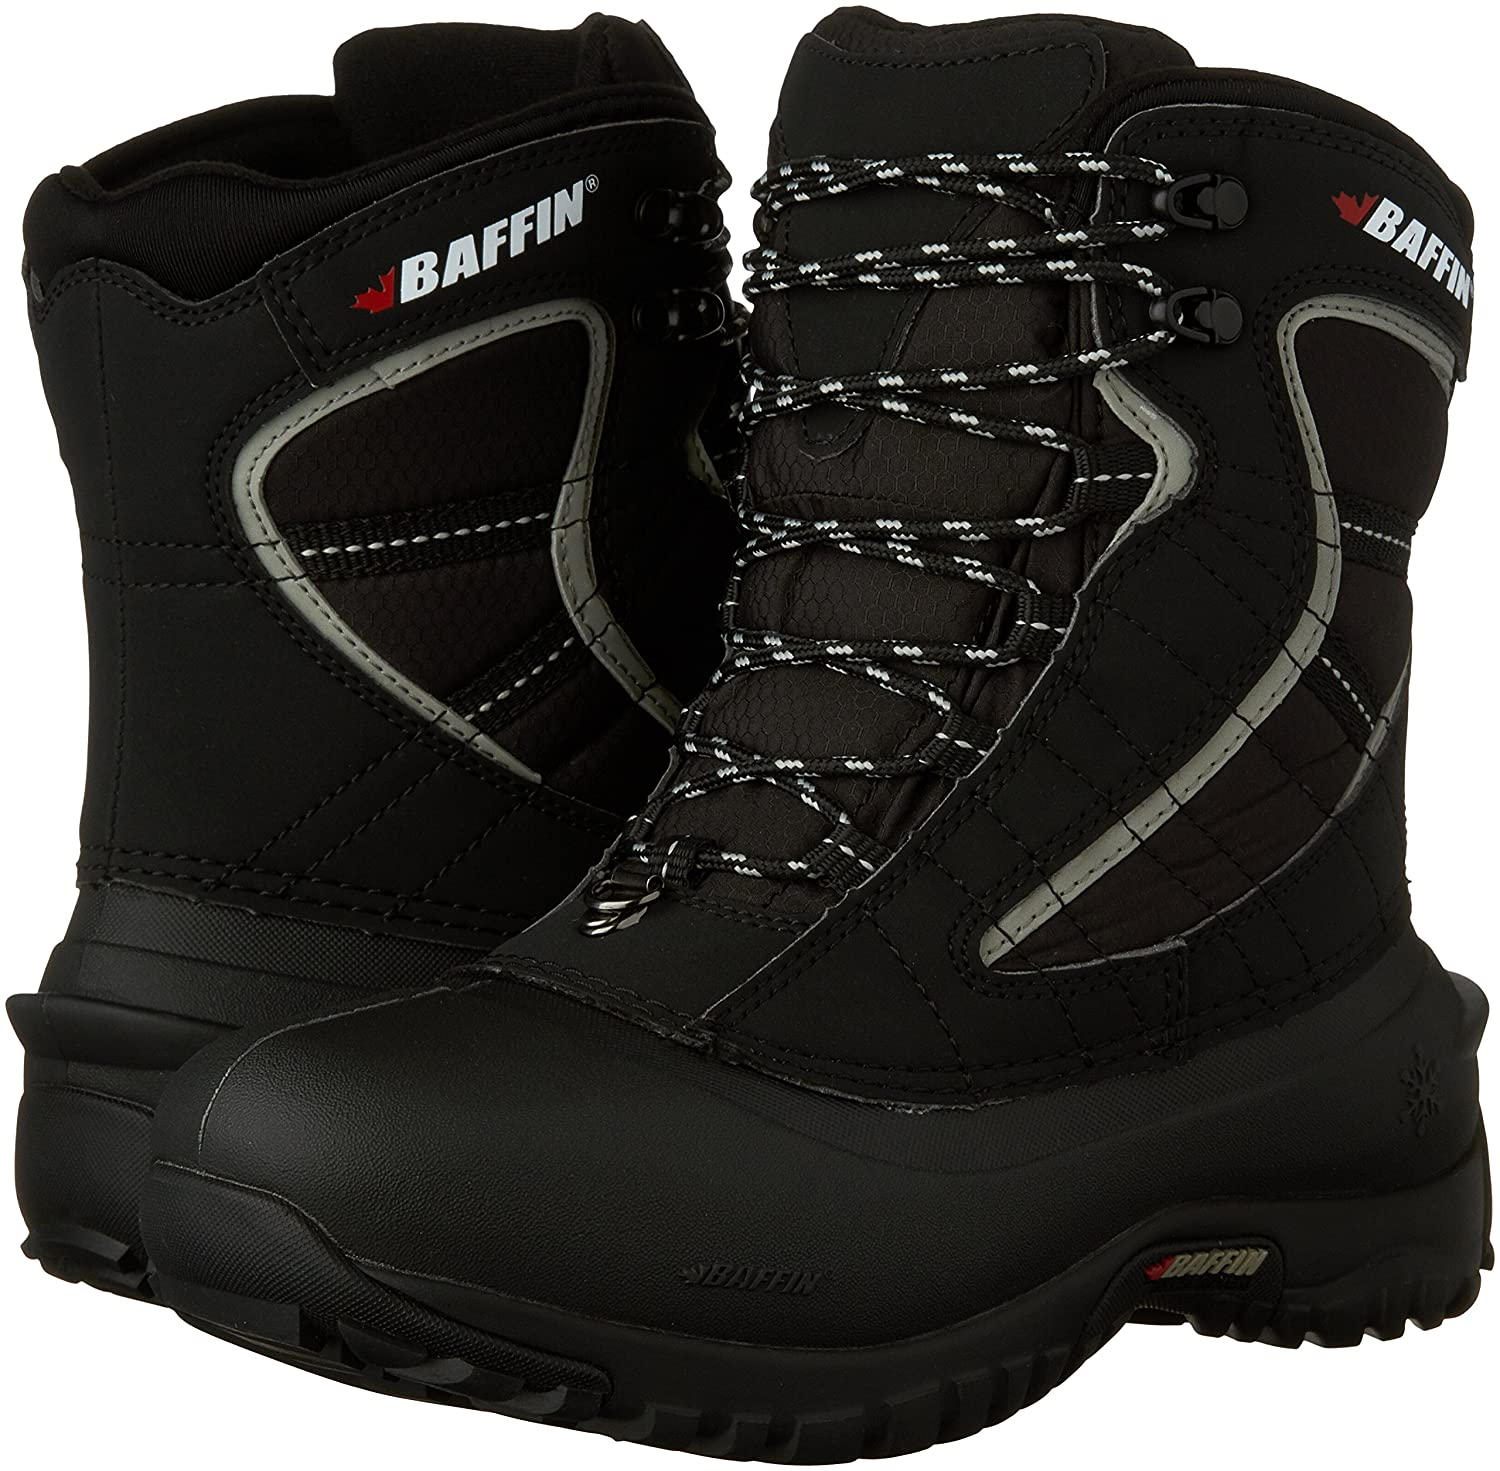 Baffin Women's Sage Insulated Active Boot B00HNTOQLA 6 B(M) US|Black